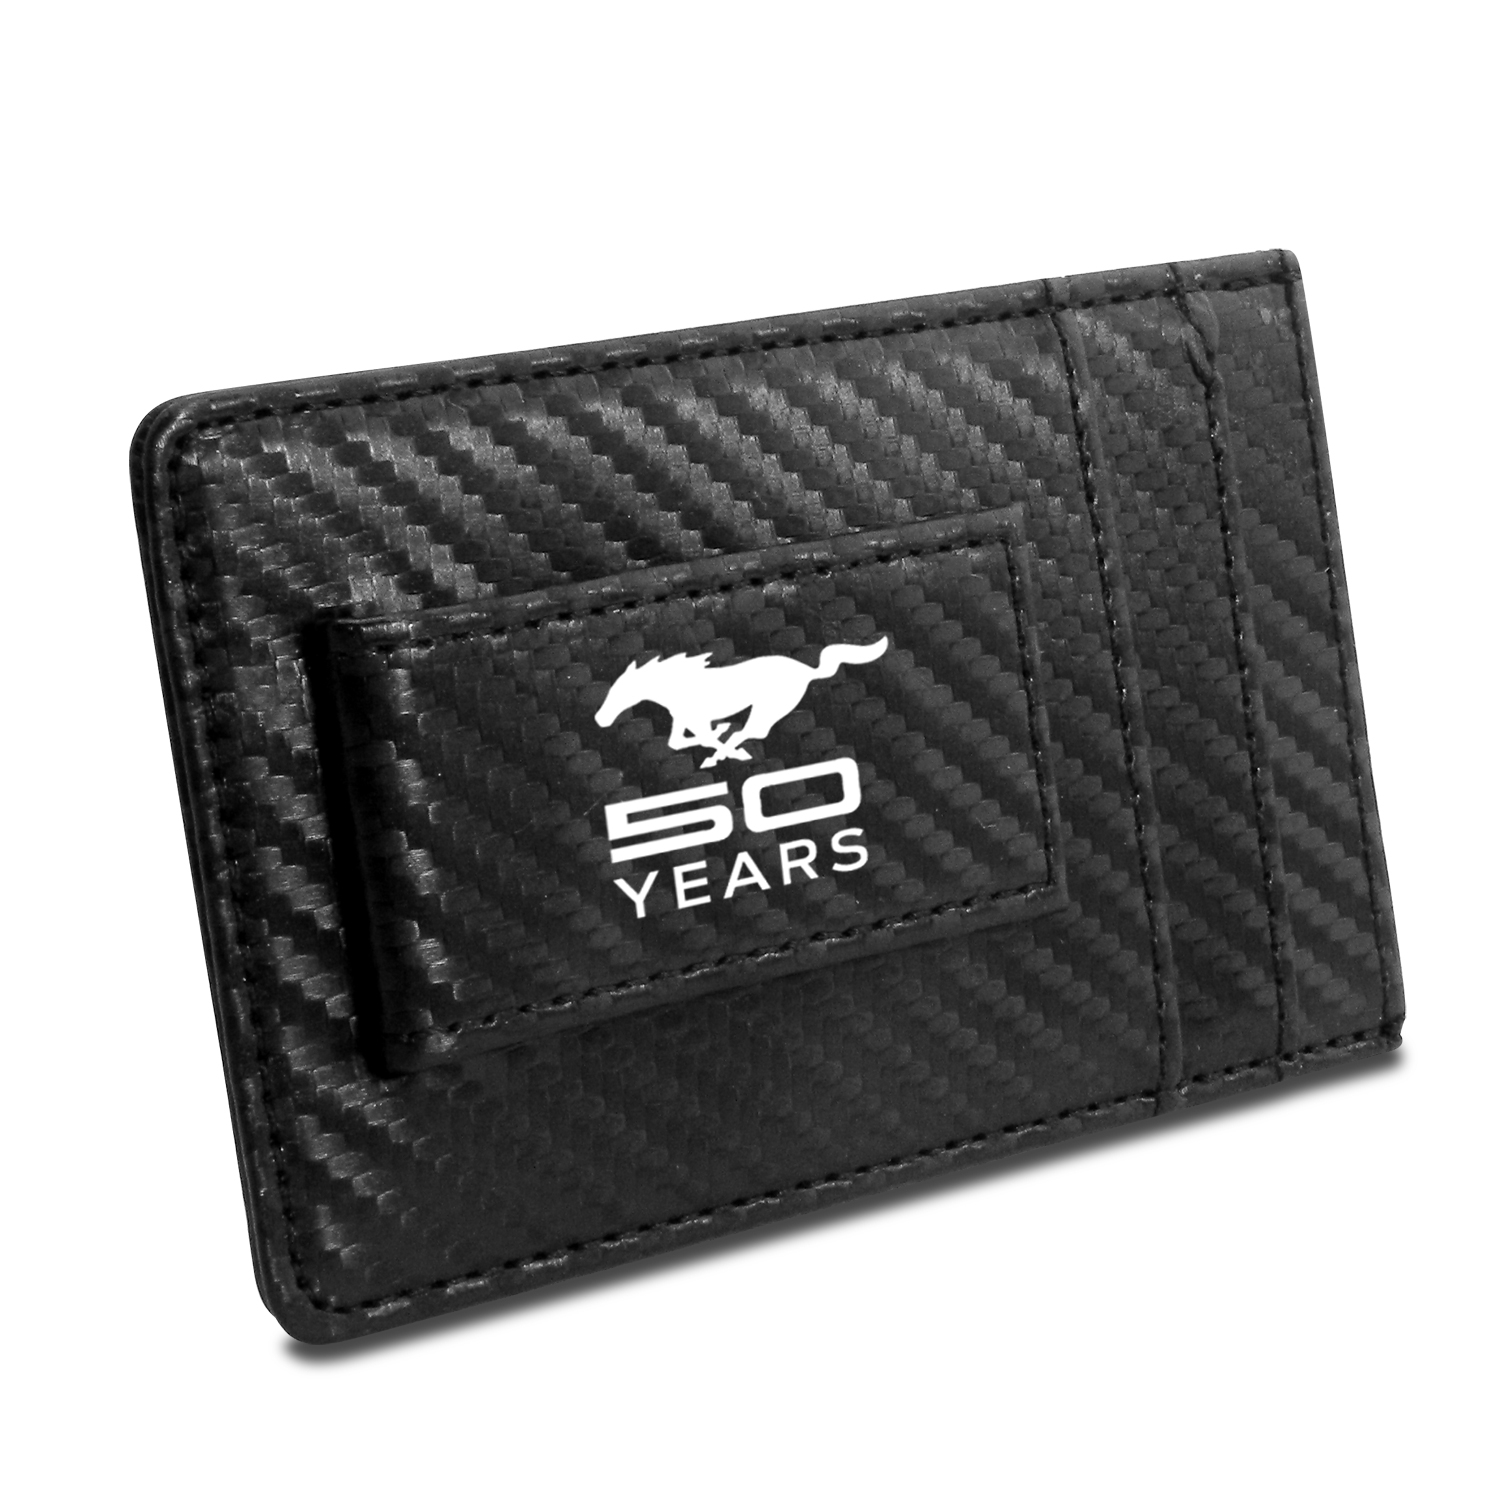 Ford Mustang 50 Years  Black Carbon Fiber RFID Card Holder Wallet